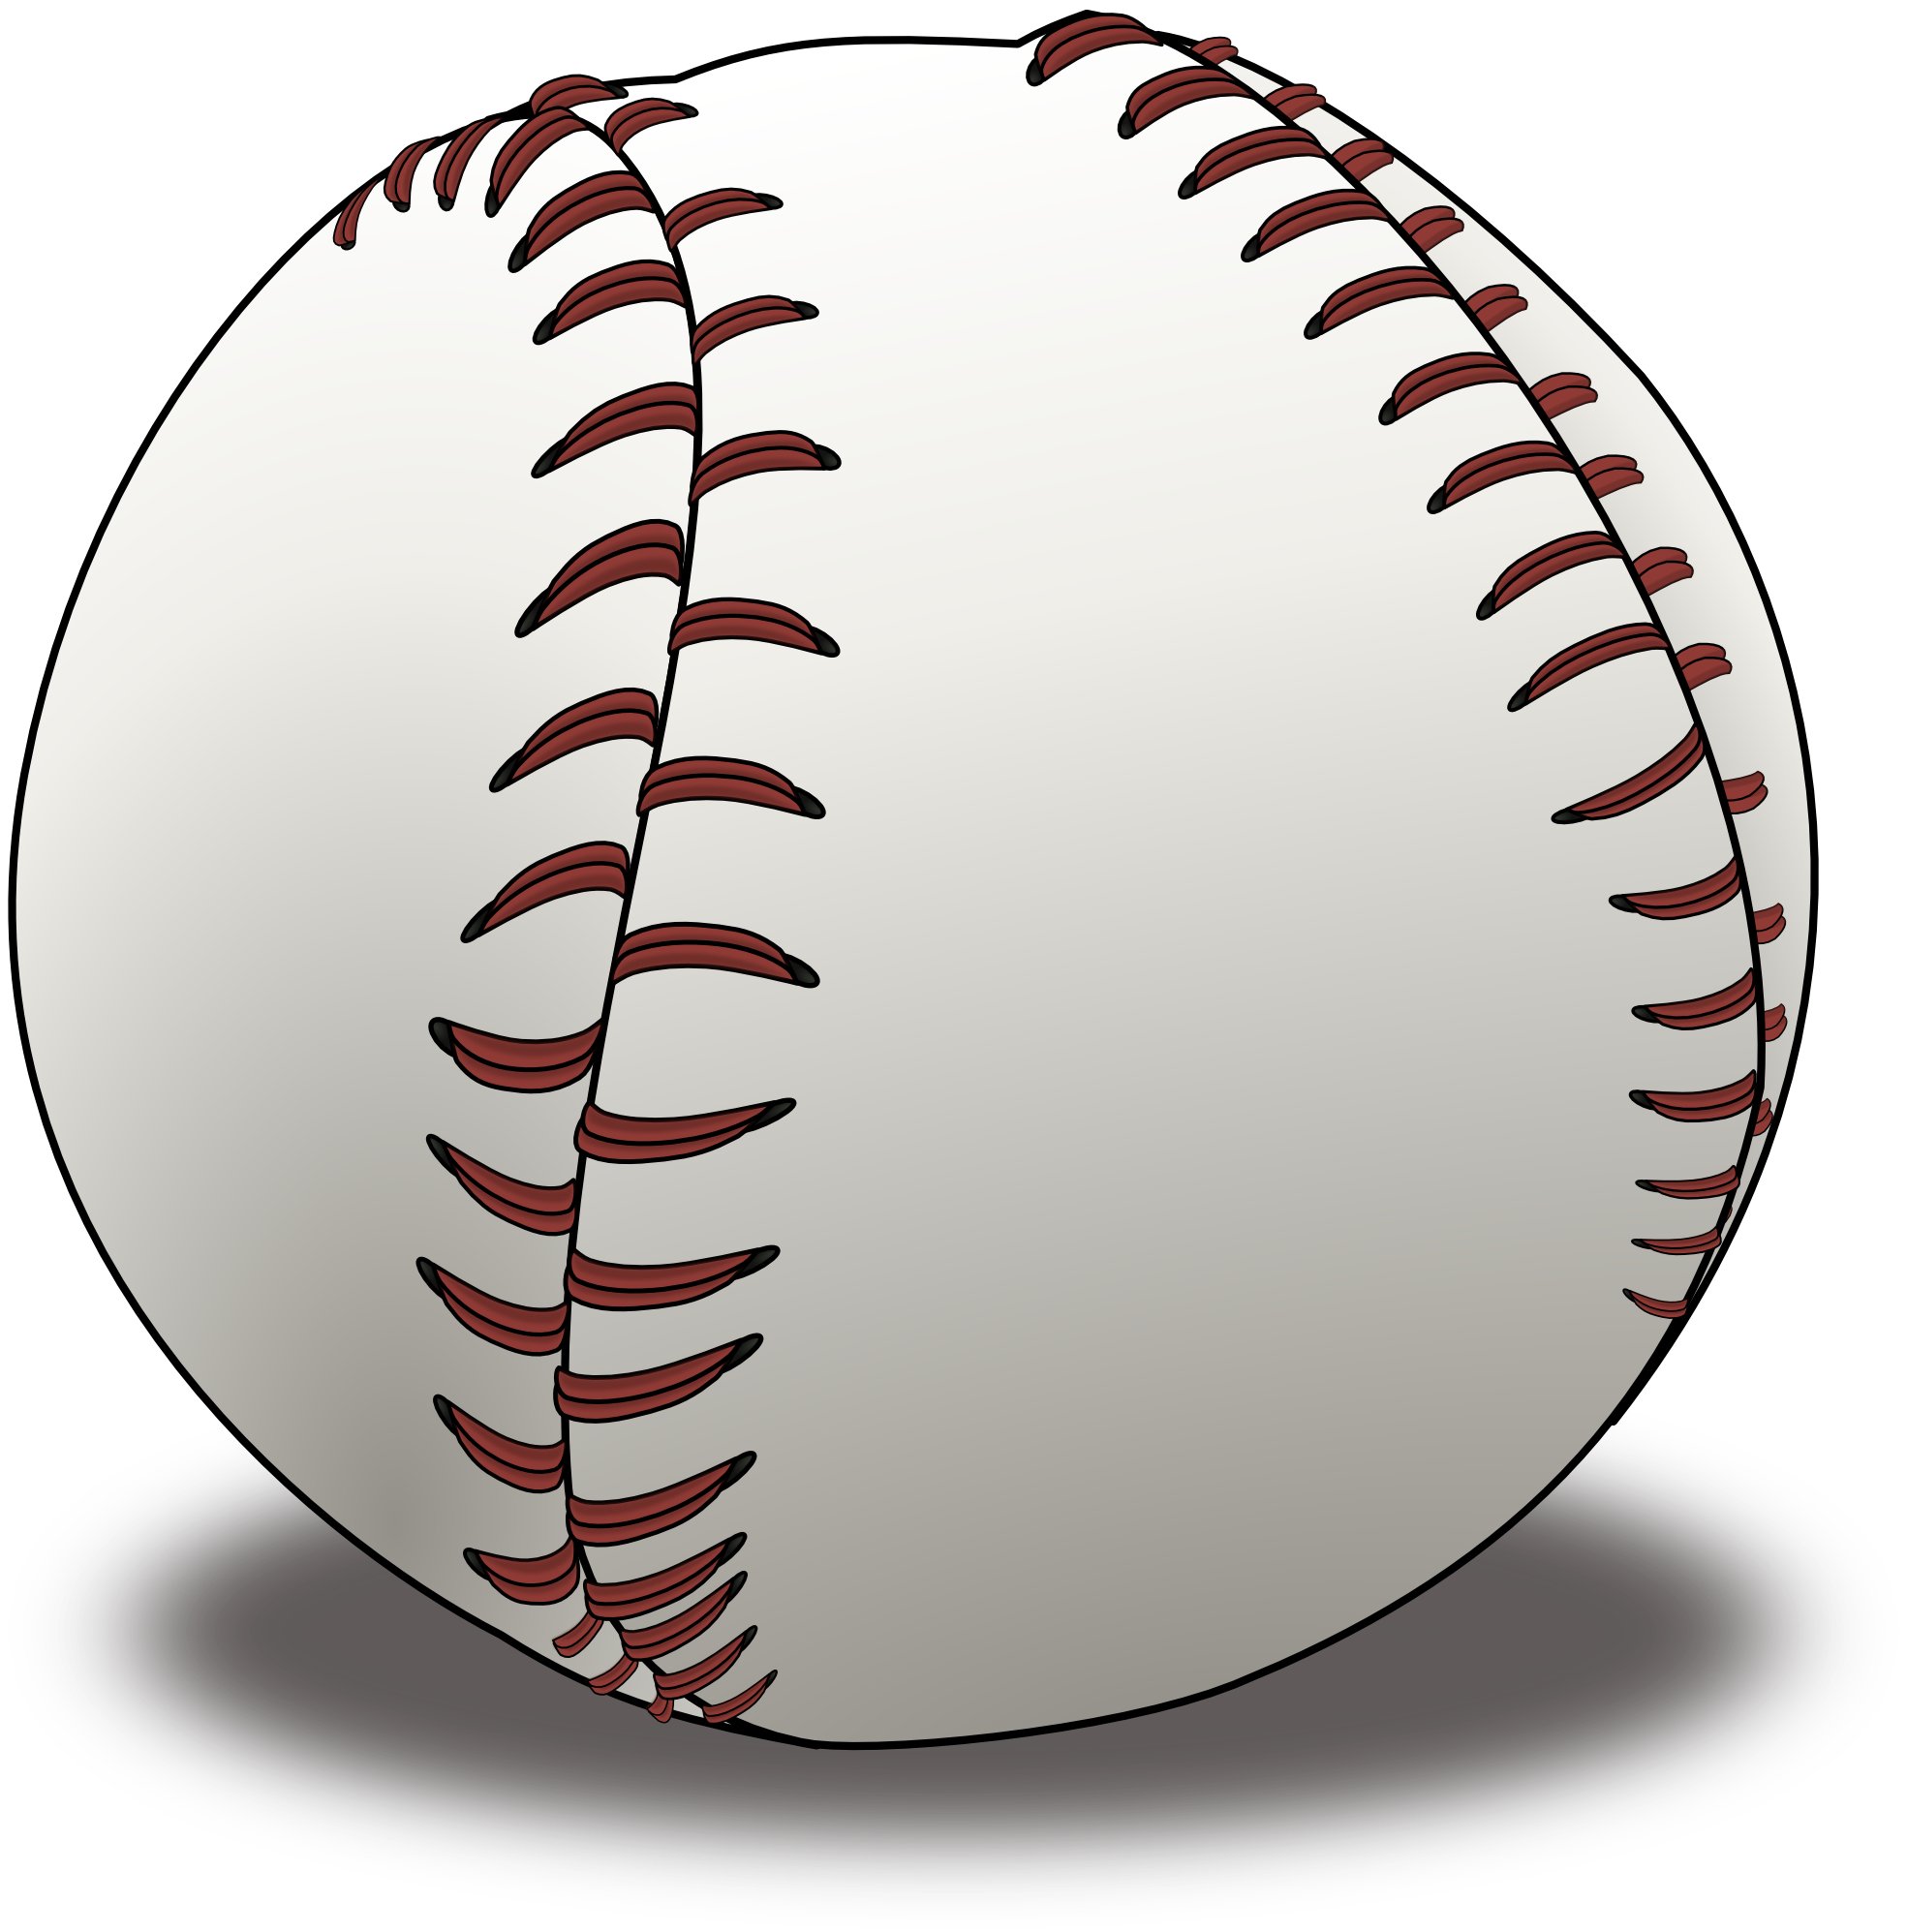 Laces clipart. Baseball png free icons